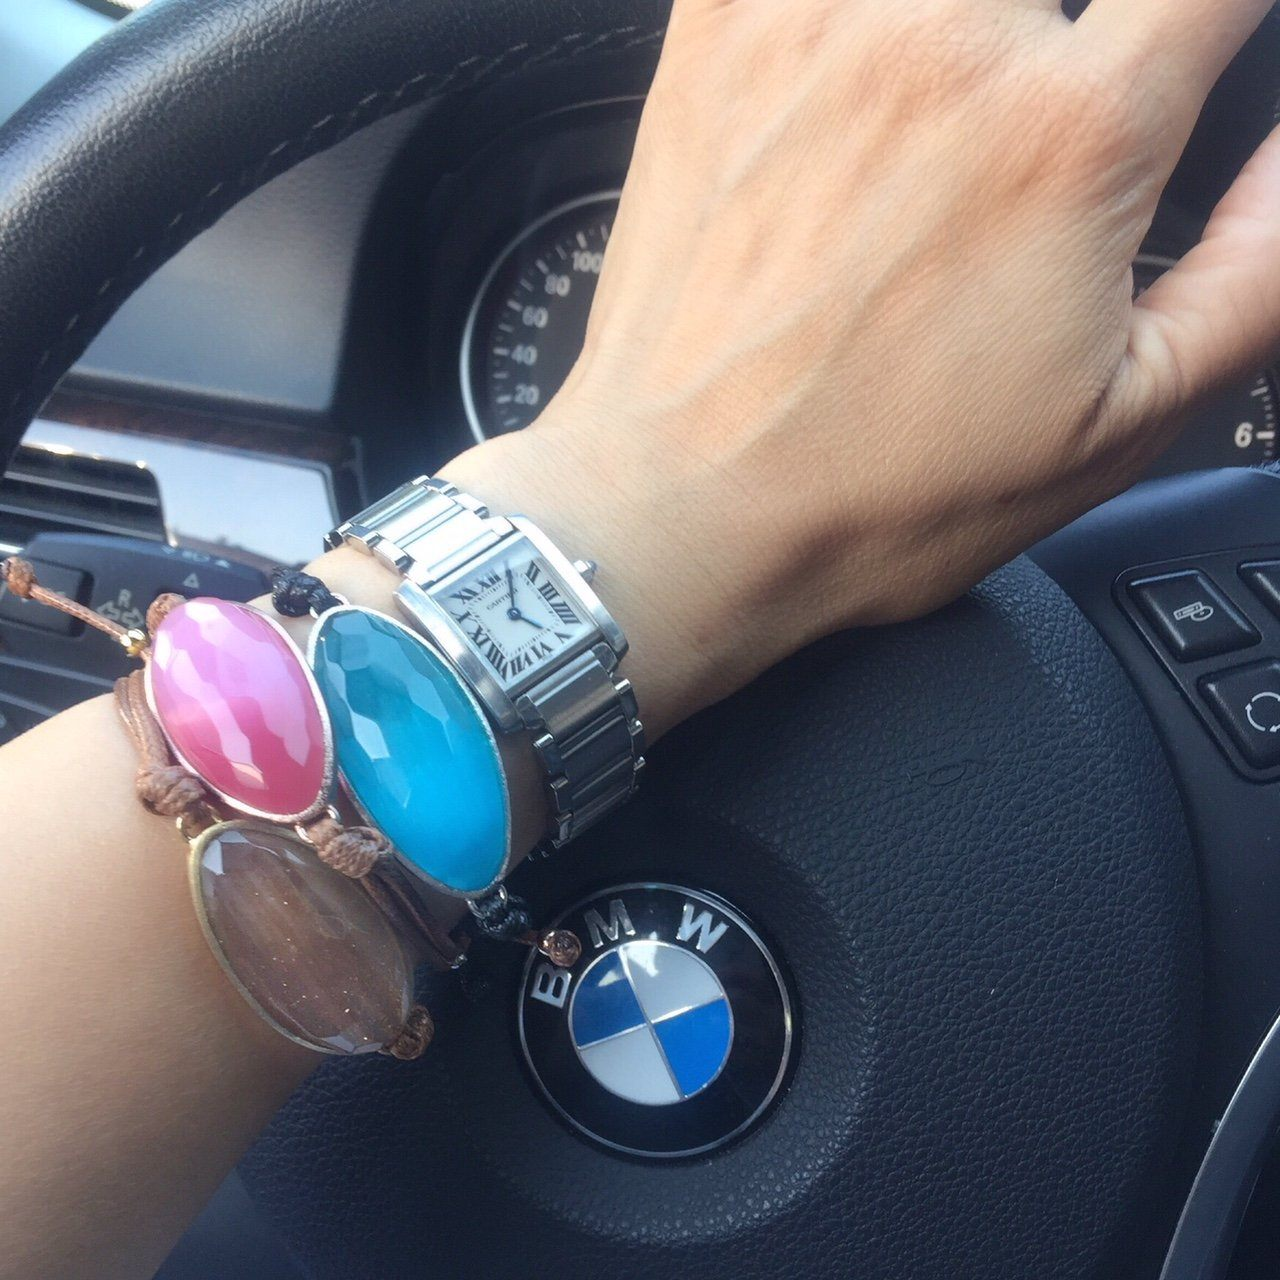 Bracelet - Dress For Success Vancouver | Values Bracelets on wrist while driving